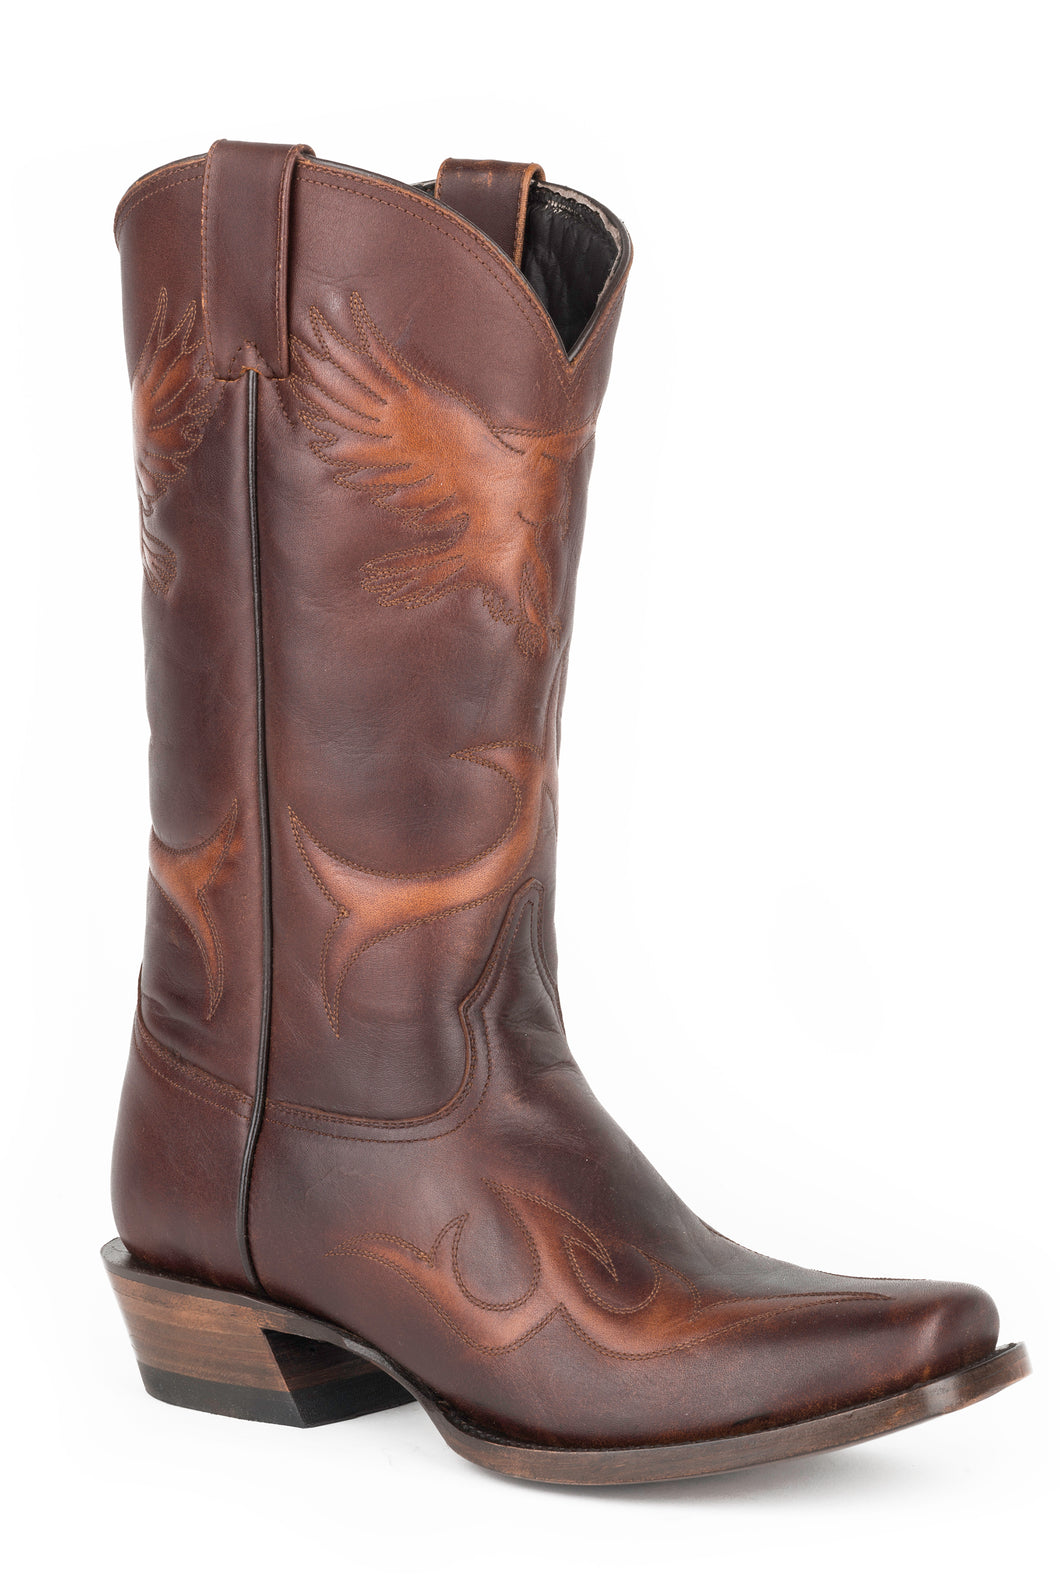 Eagle Strike Boot Mens Boot Sq Toe Eagle Emb Shf Br Brush Off Lthr